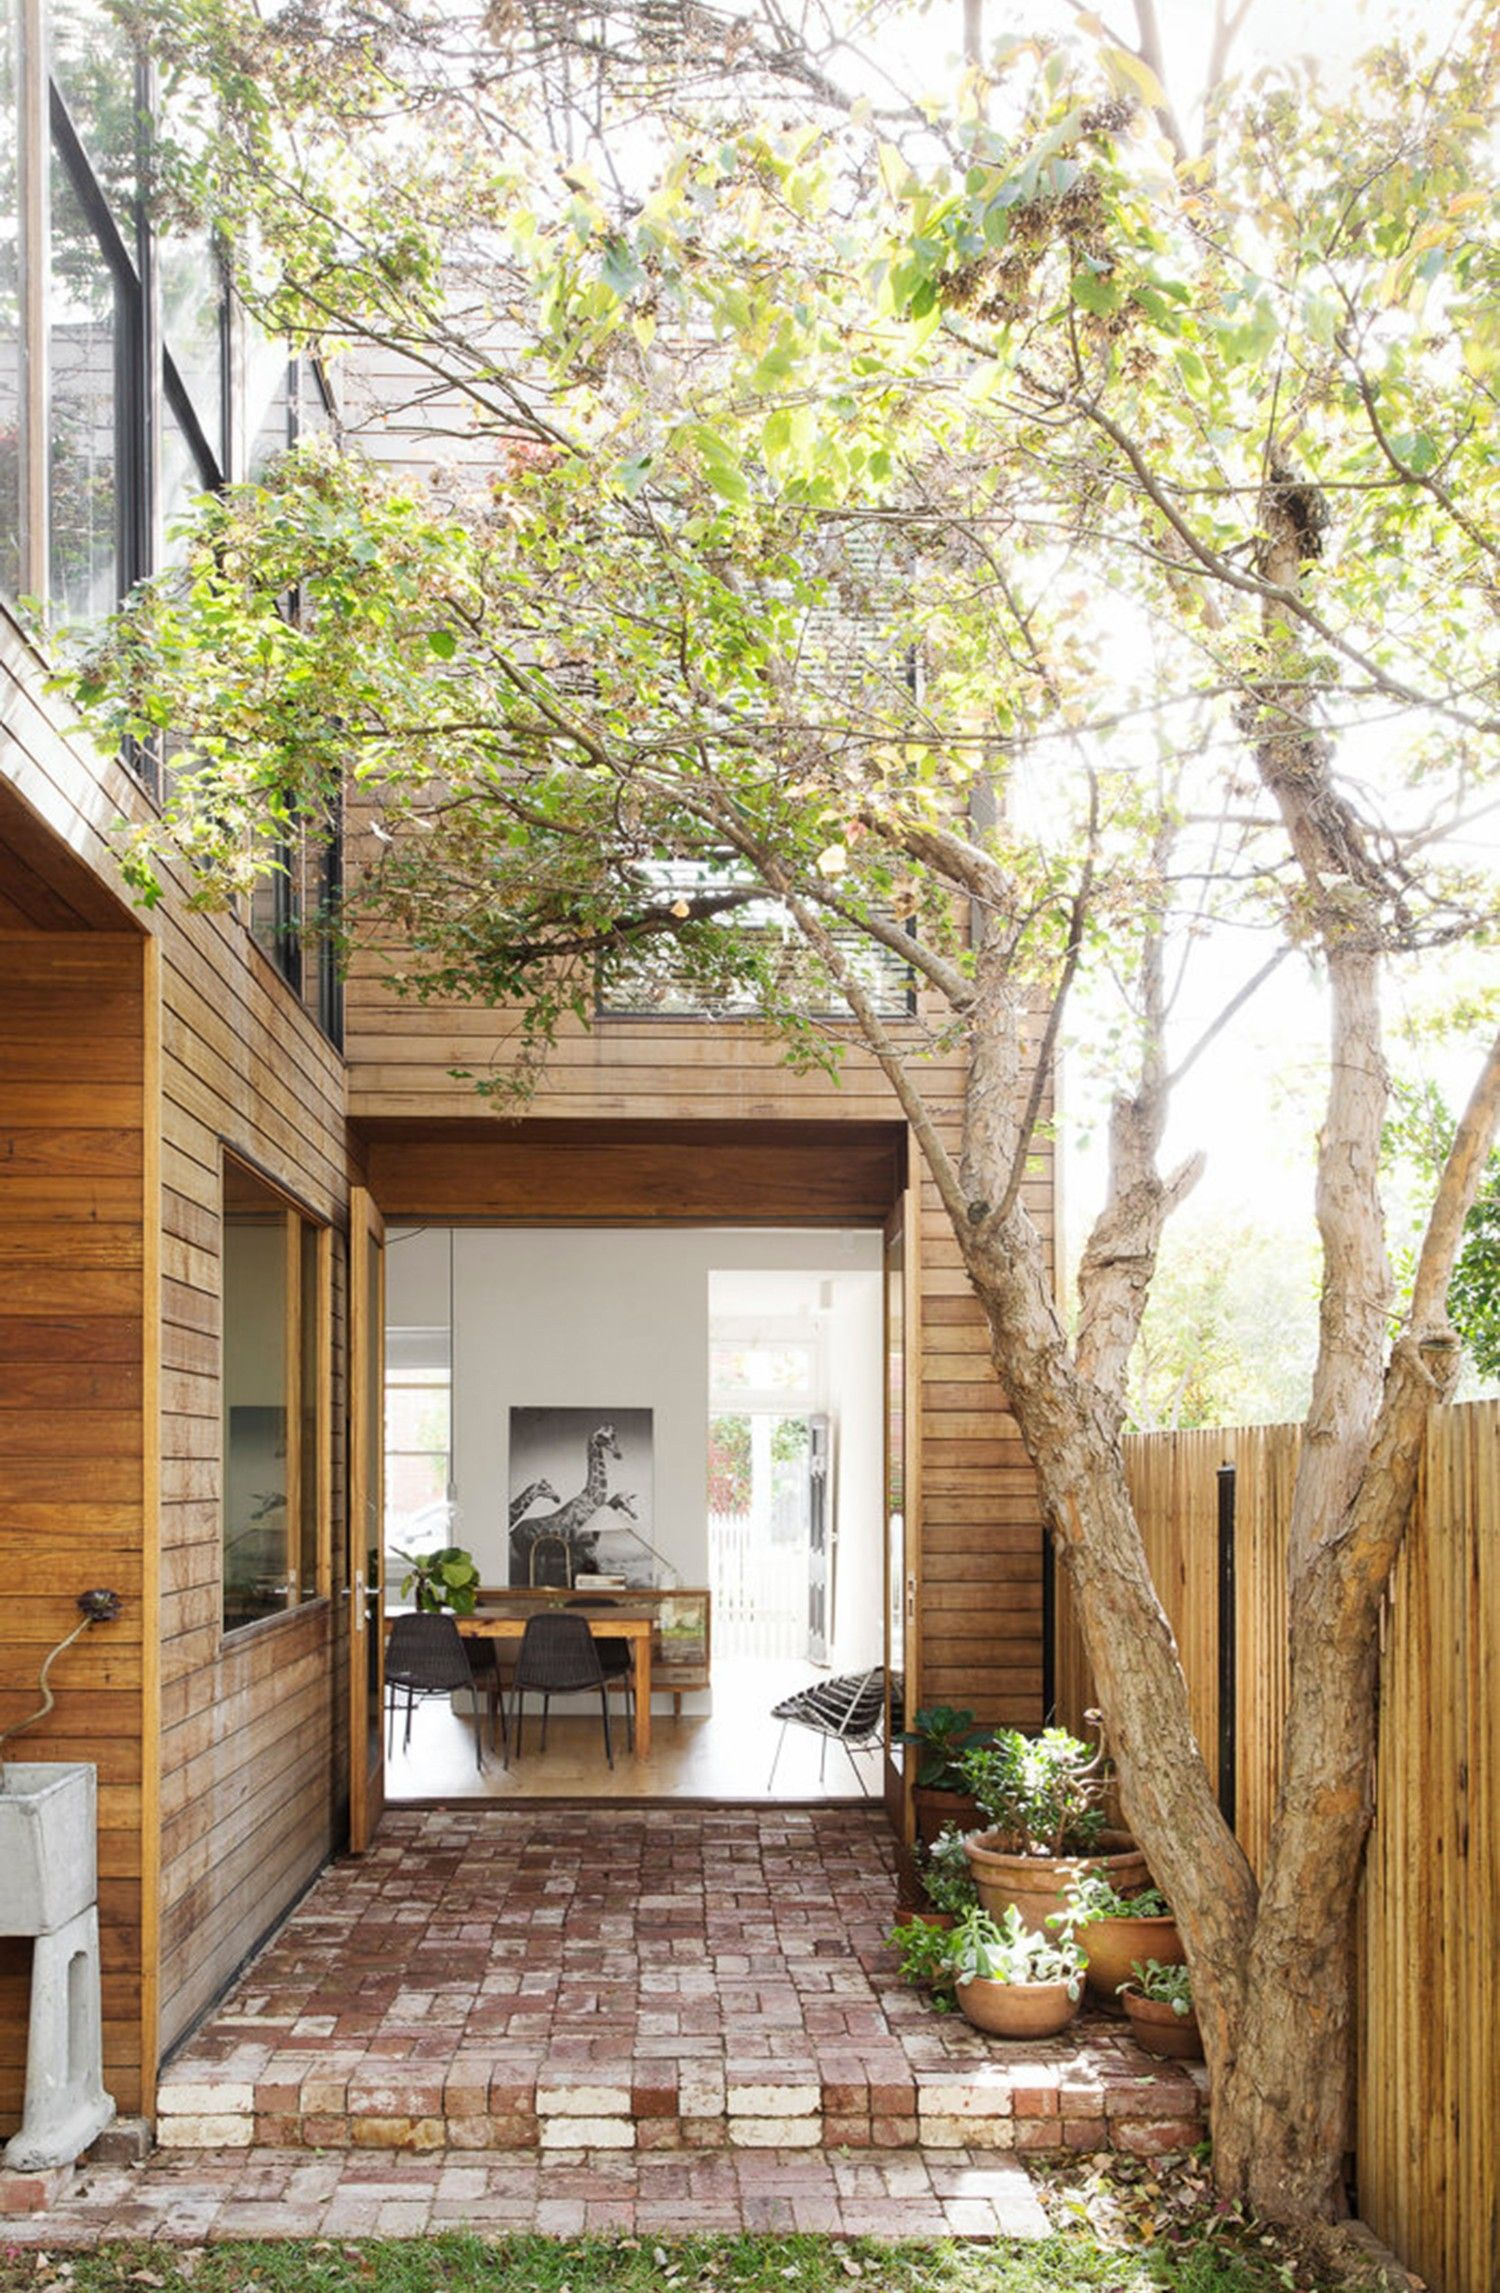 Related Image For The Home Pinterest Home Outside Design Est-living-fitzroy-house-pipkorn-kilpatrick Outdoor Spaces, Australian Homes